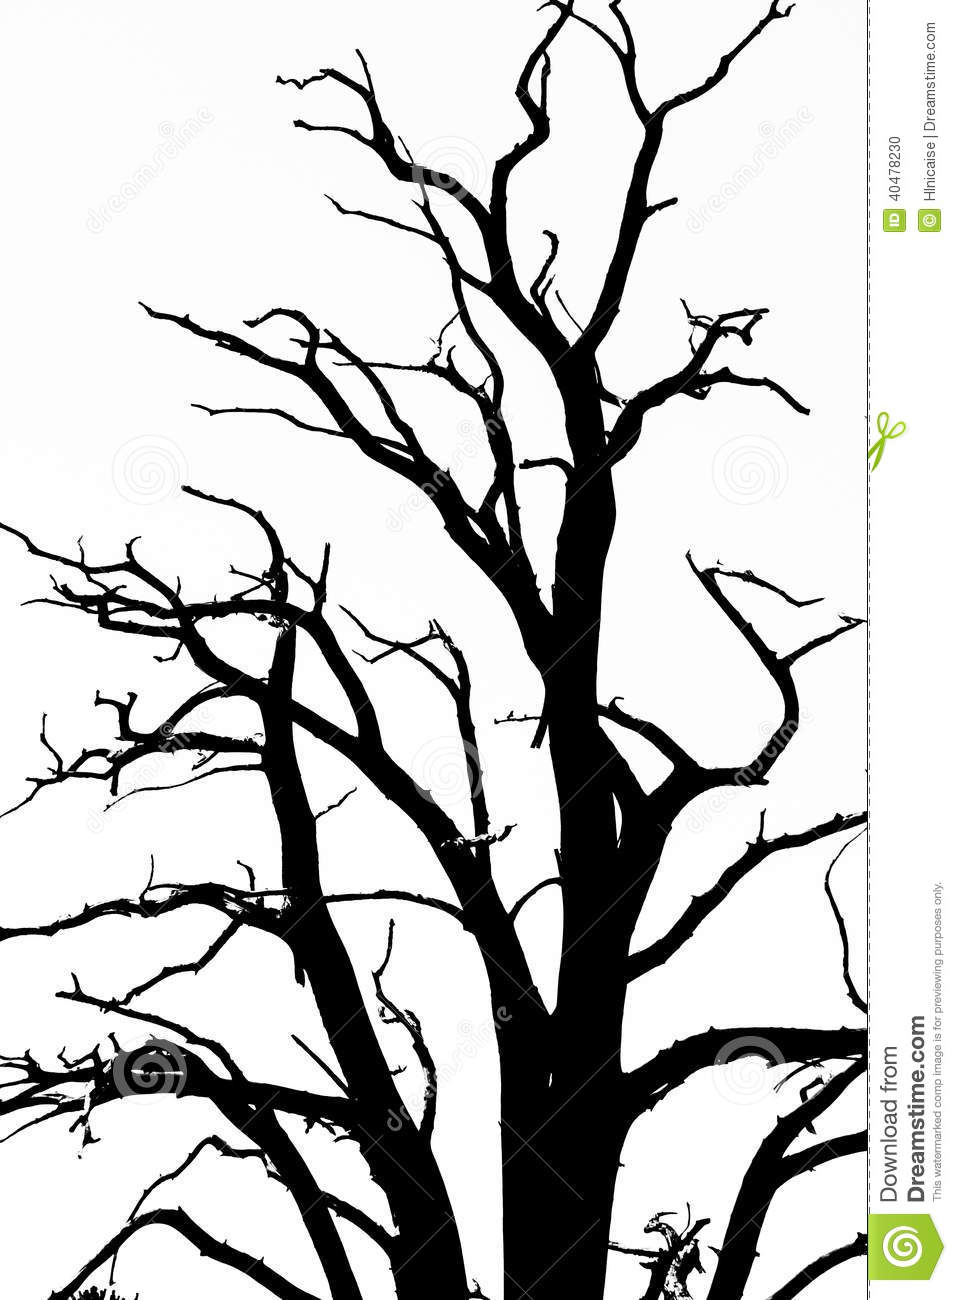 Bare Tree Branches stock photo. Image of black, tree ...